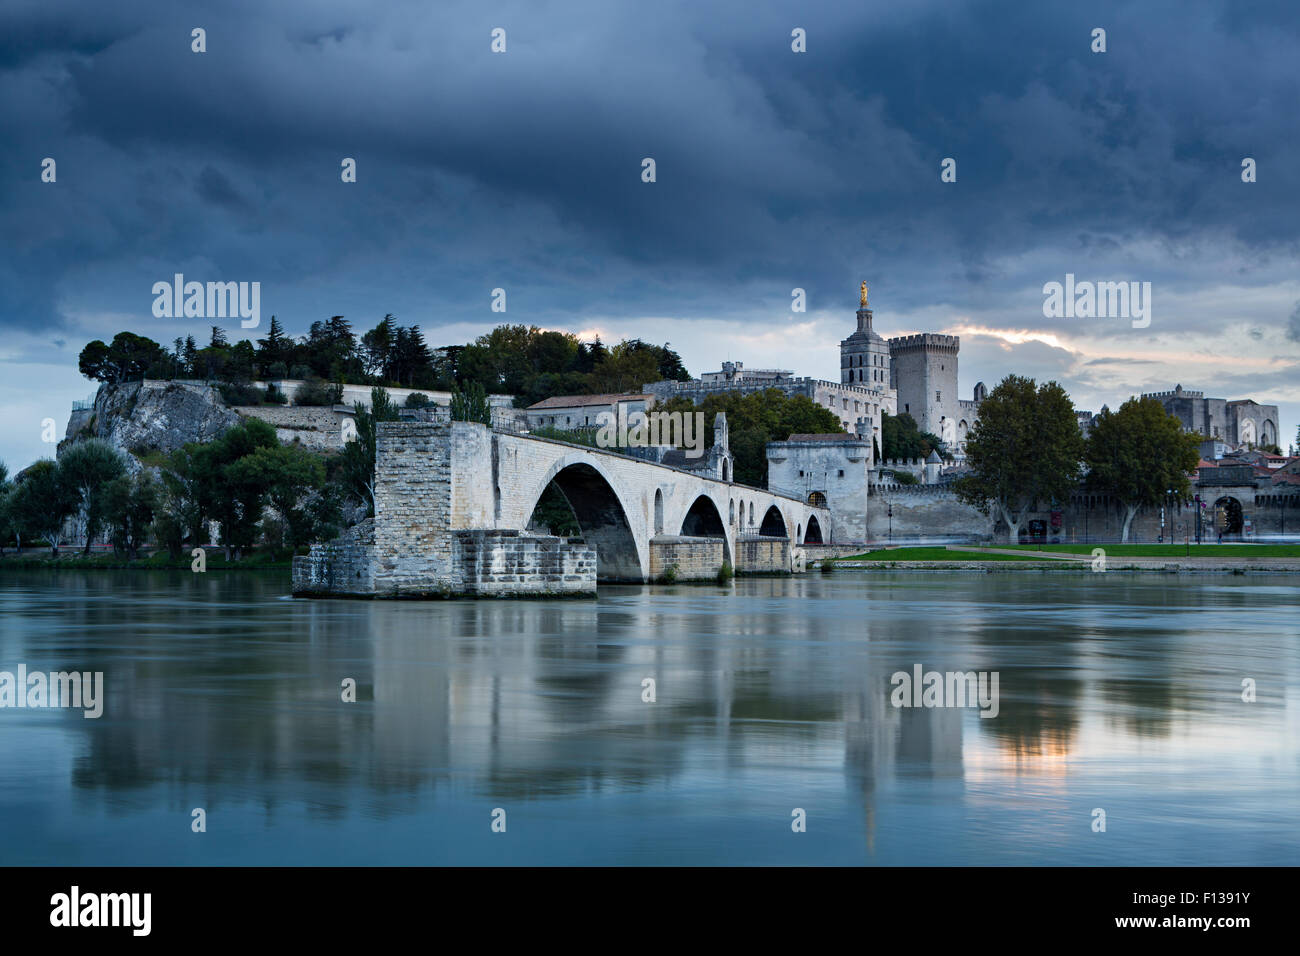 The Pont St-Benezet, Palais des Papes and Rhone River at dusk, Avignon, Provence, France, October 2012. - Stock Image